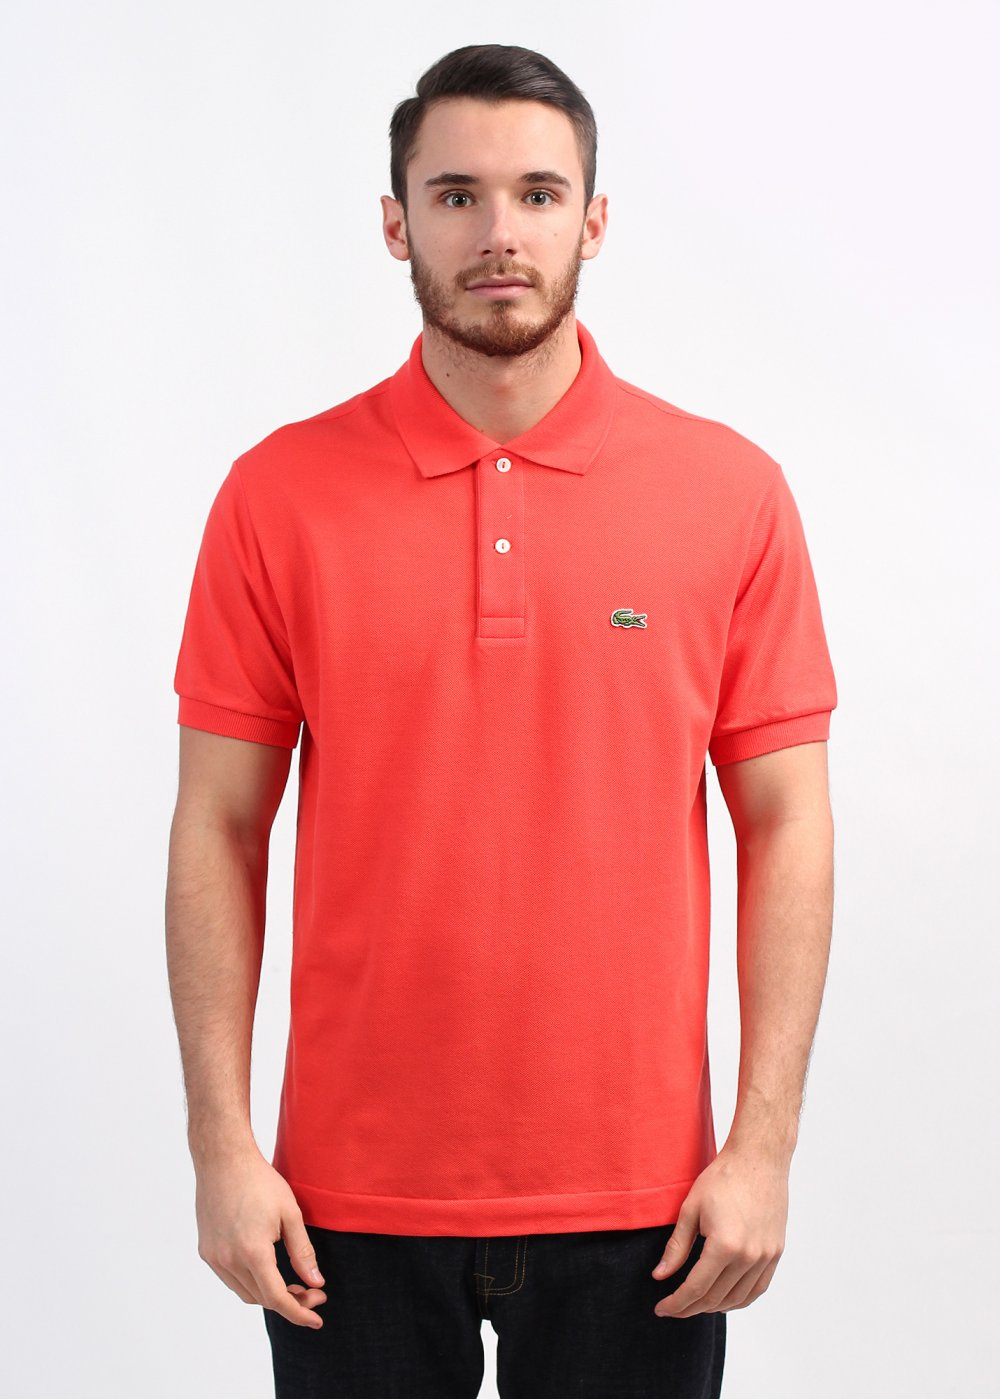 The polo shirt—you probably think of it for tennis, golf, or casual Friday. But a short-sleeved, collared shirt can carry you all the way through a summer day that goes from beach to bar (and maybe back again, depending who you meet at the bar).